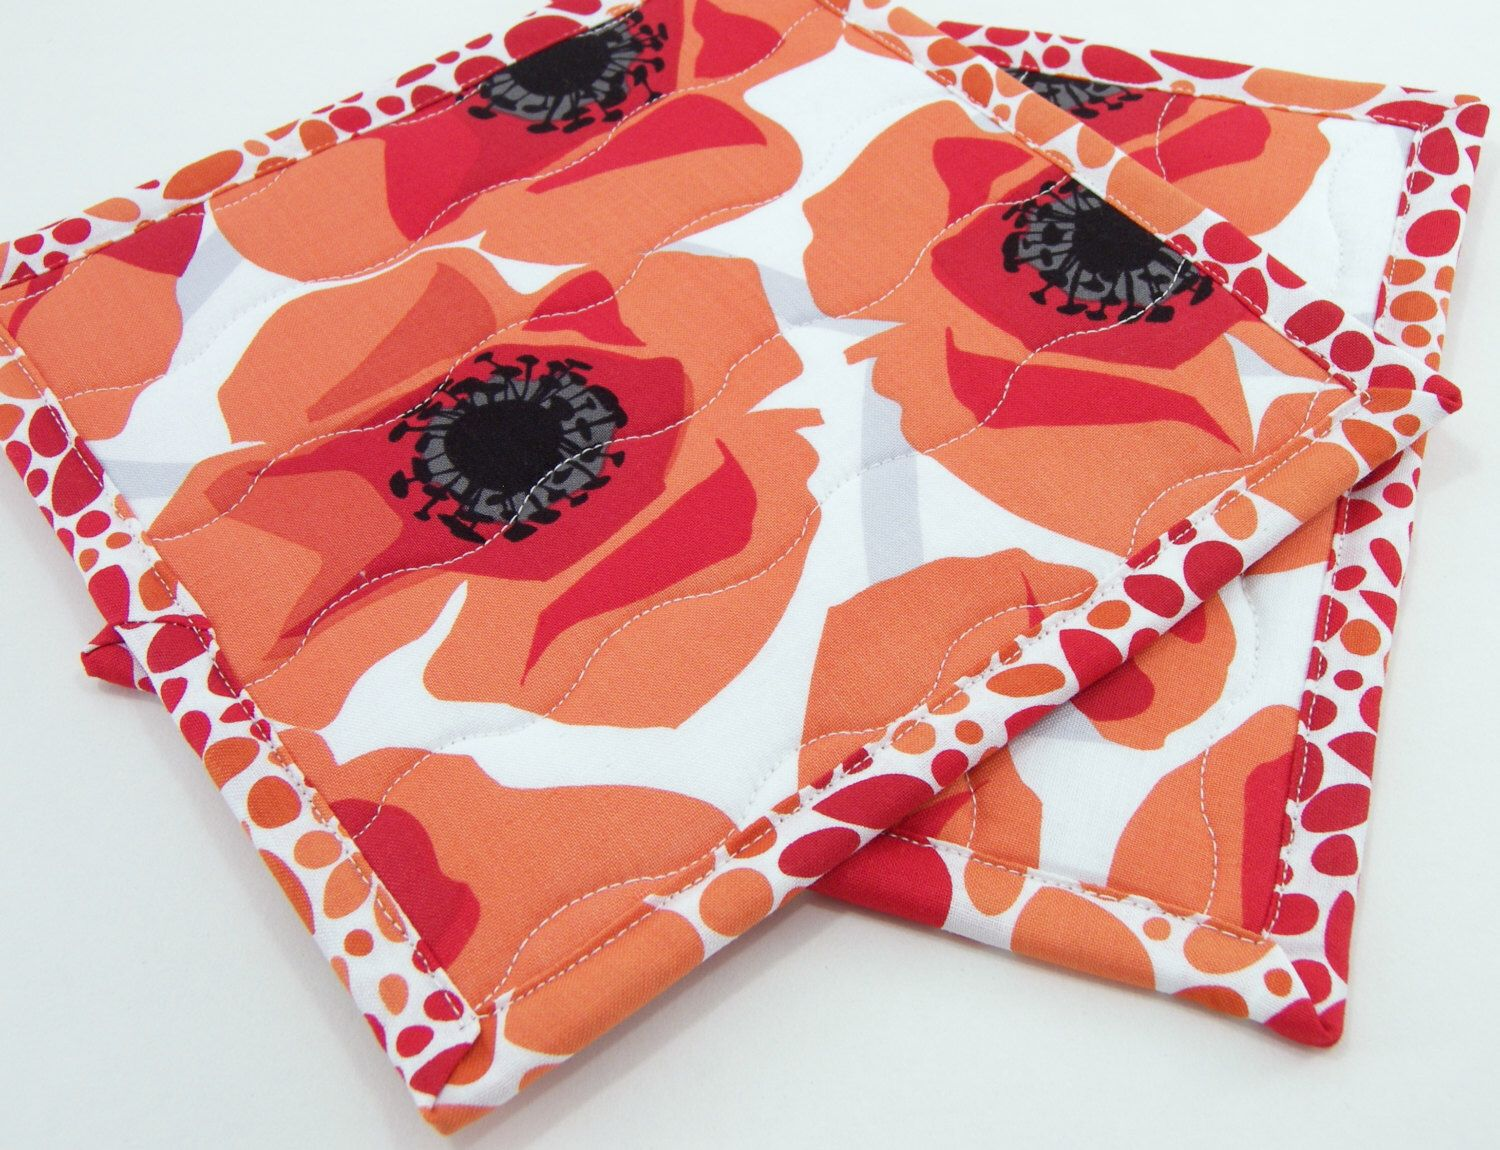 Quilted Pot Holders, Cotton Hot Pads - Orange and Red Poppies on White Floral Potholders Set of Two 8 Inch Hot Pads - Housewarming Gift by HotPotHolder on Etsy https://www.etsy.com/listing/161149669/quilted-pot-holders-cotton-hot-pads